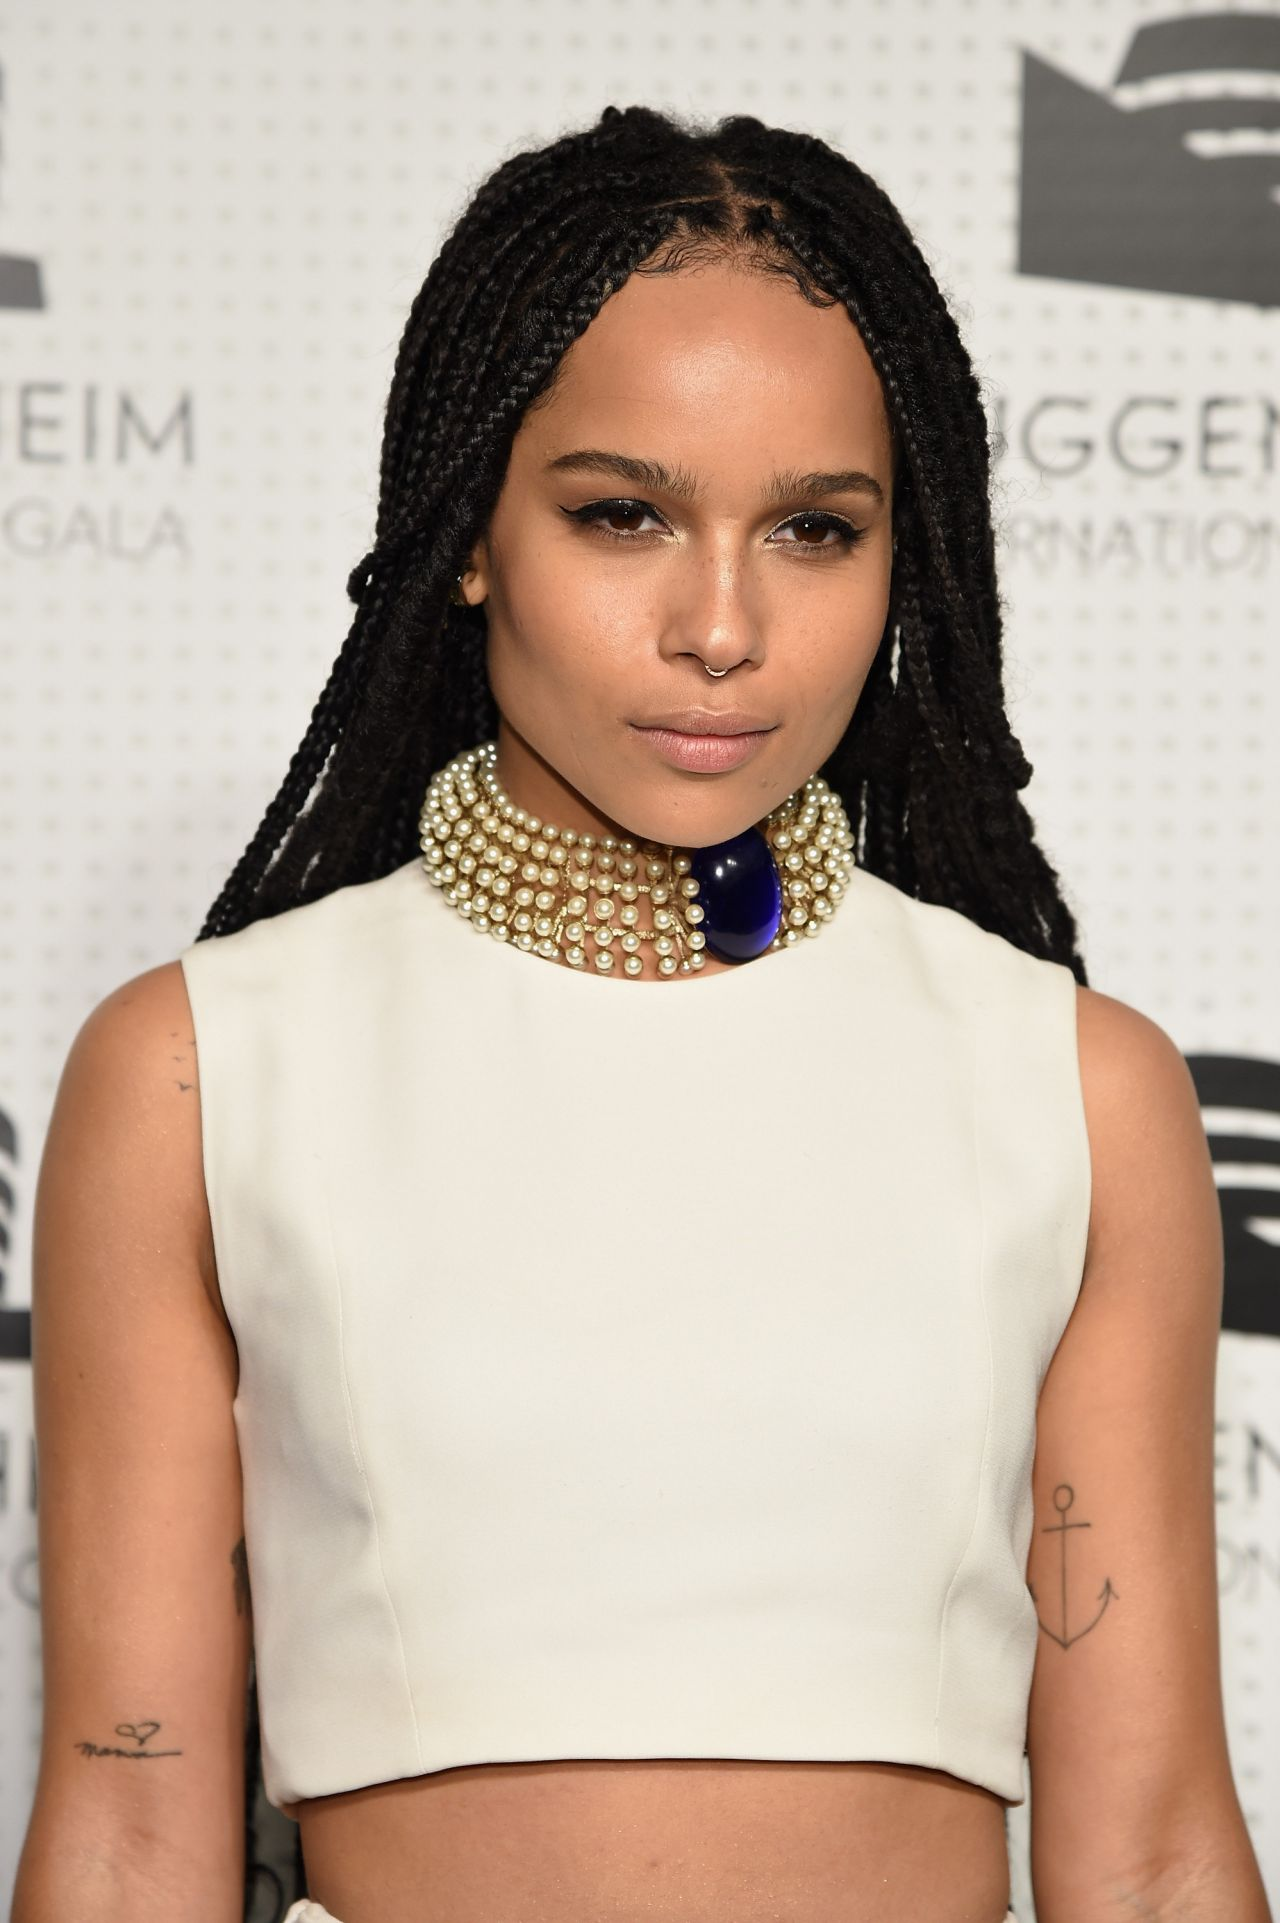 Zoe Kravitz Guggenheim International Gala Dinner In New